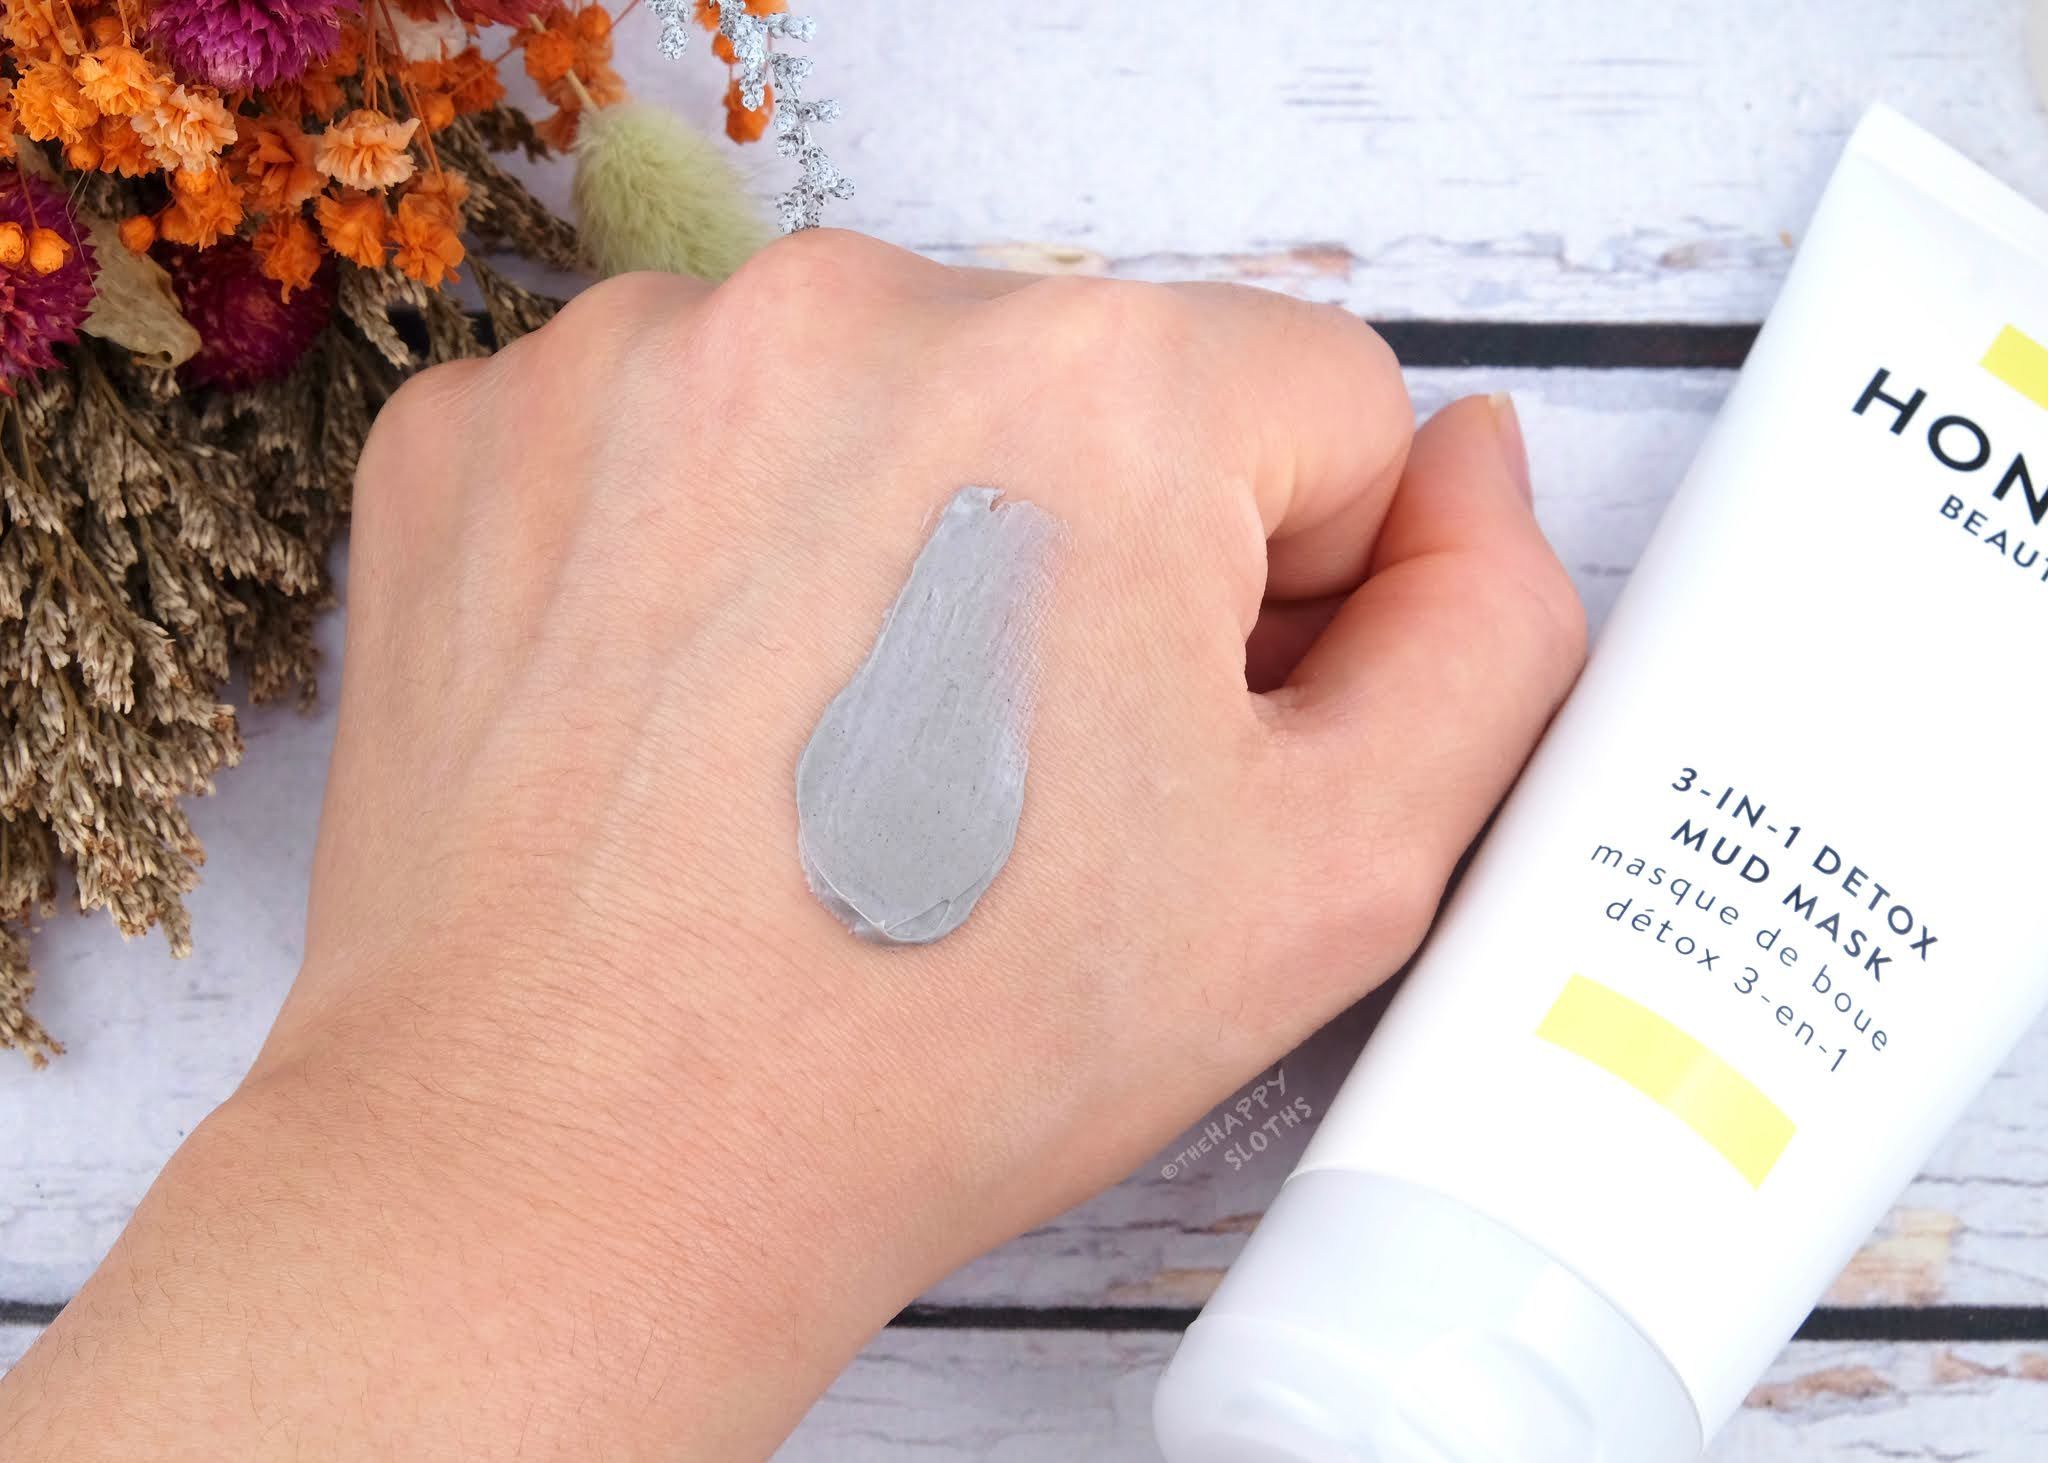 Honest Beauty | 3-in-1 Detox Mud Mask: Review